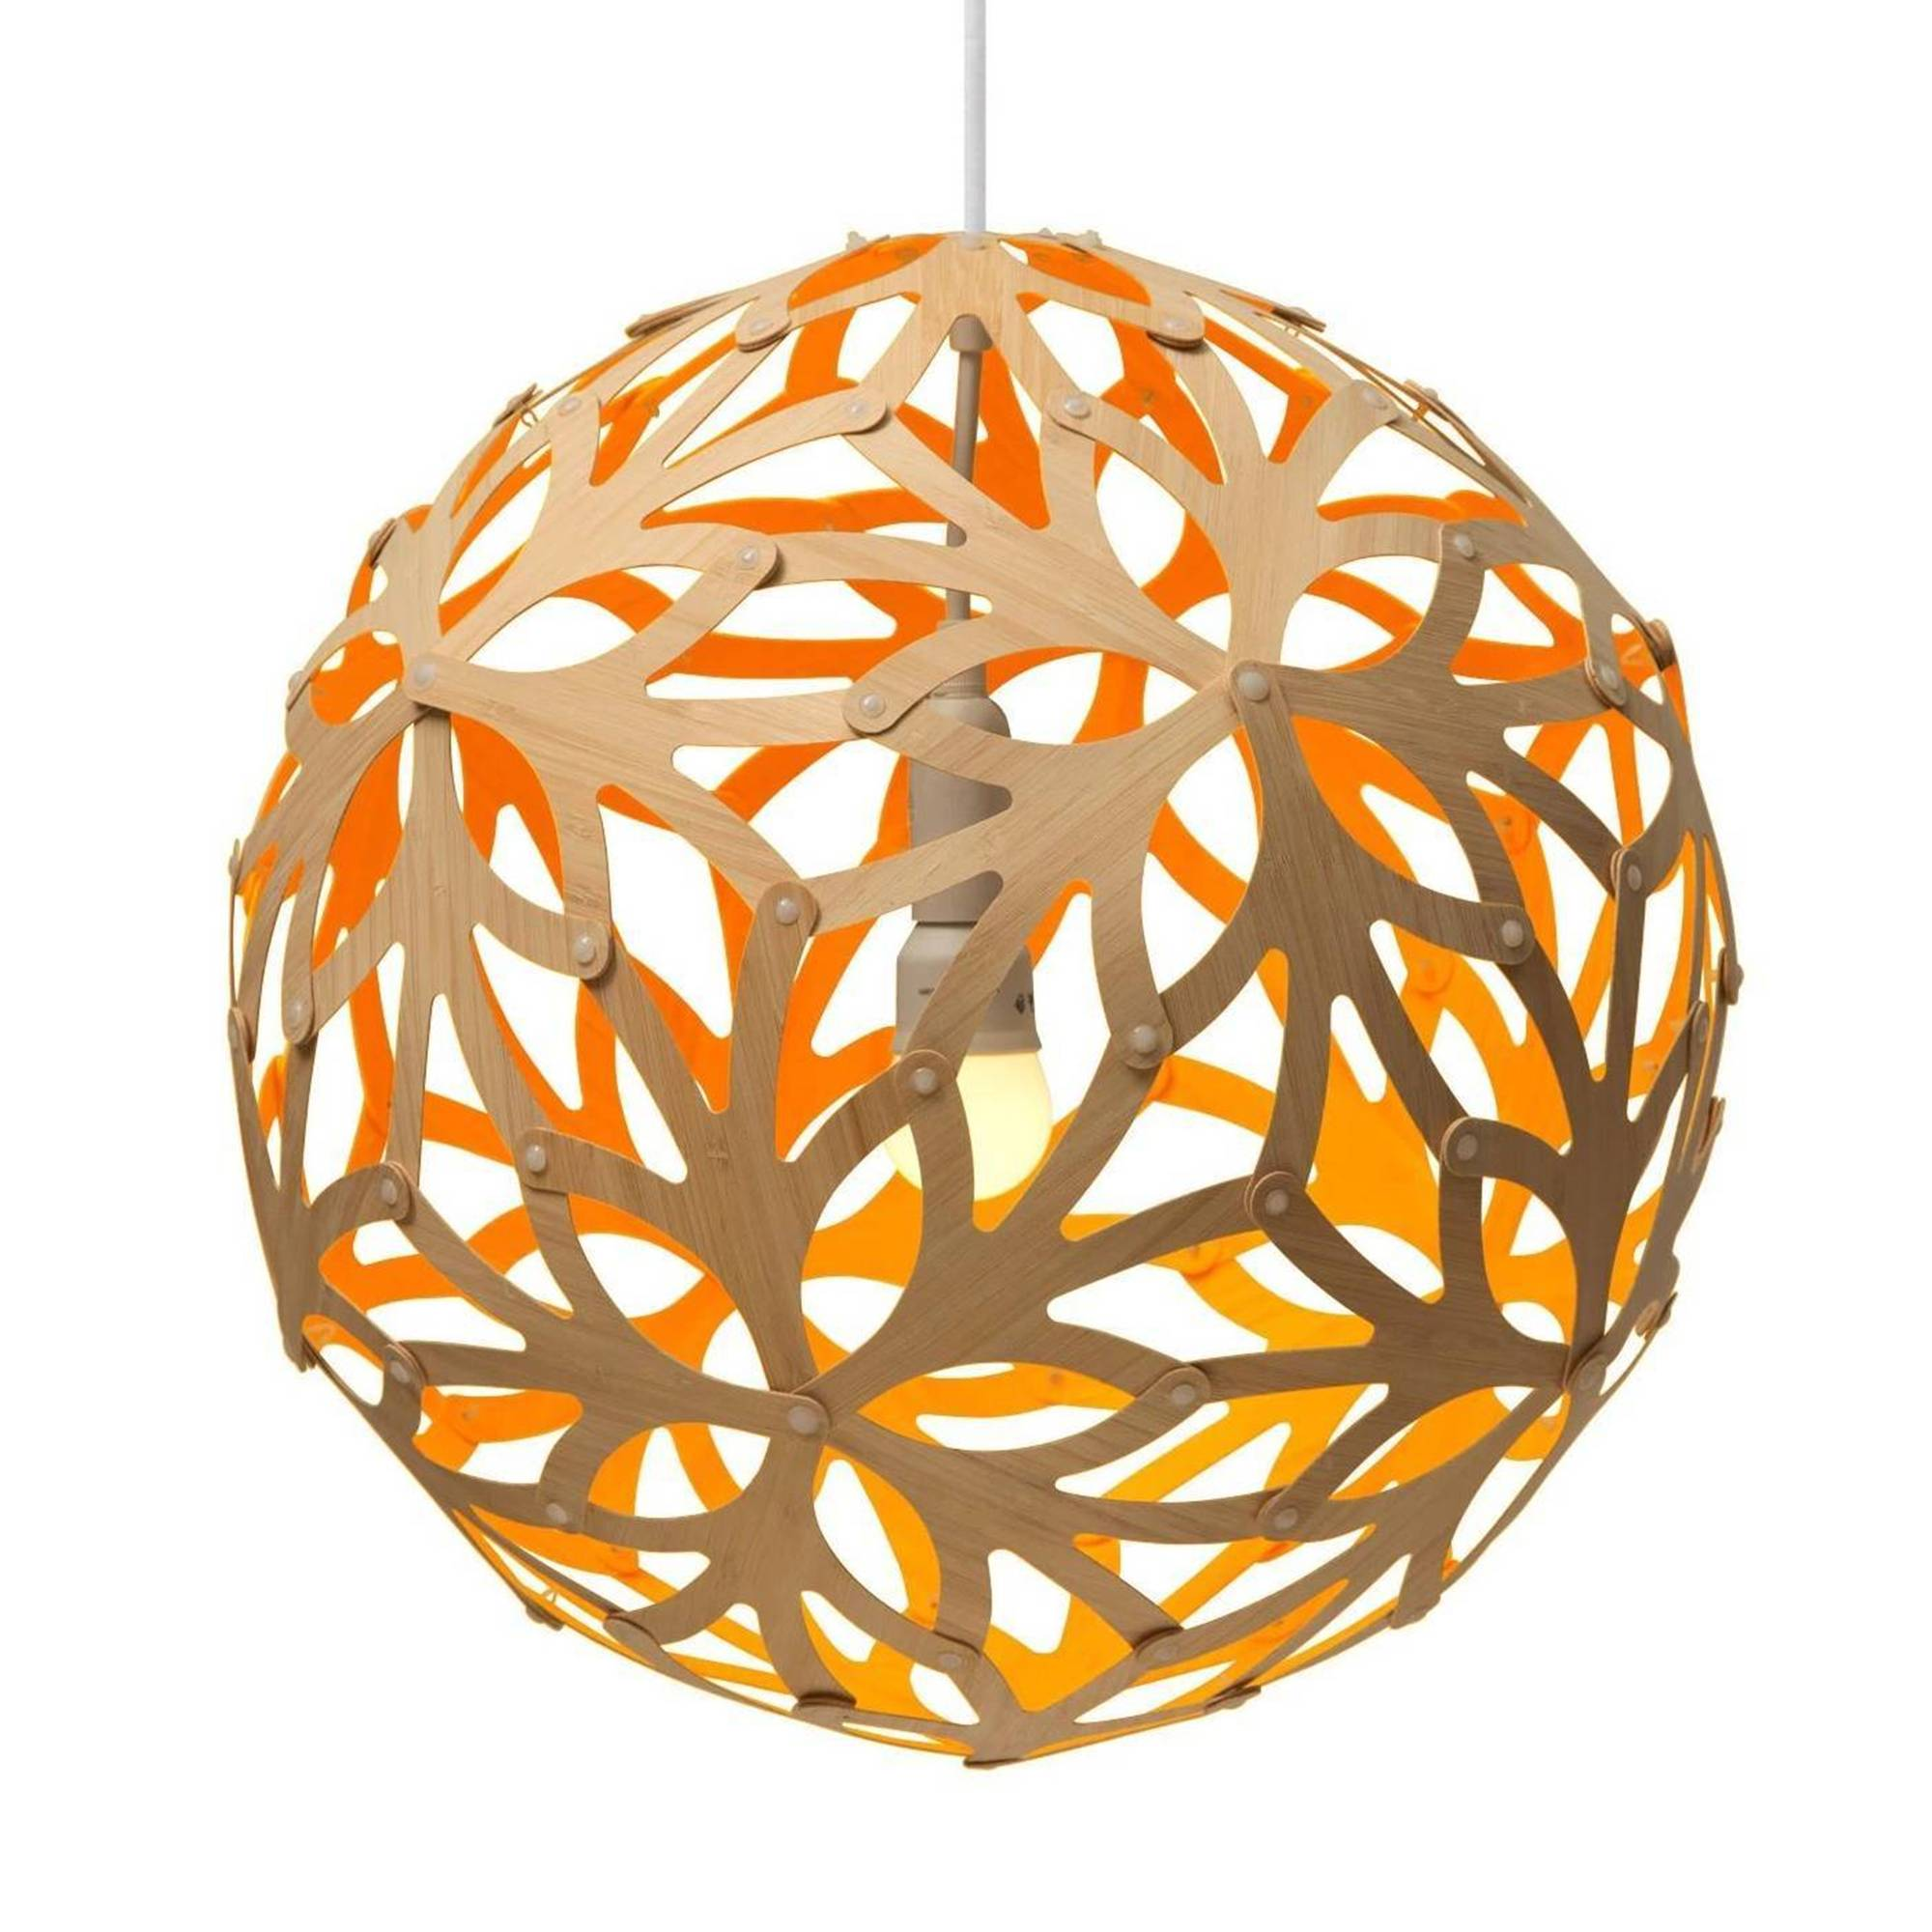 Floral Pendant Light: 1200 + Orange